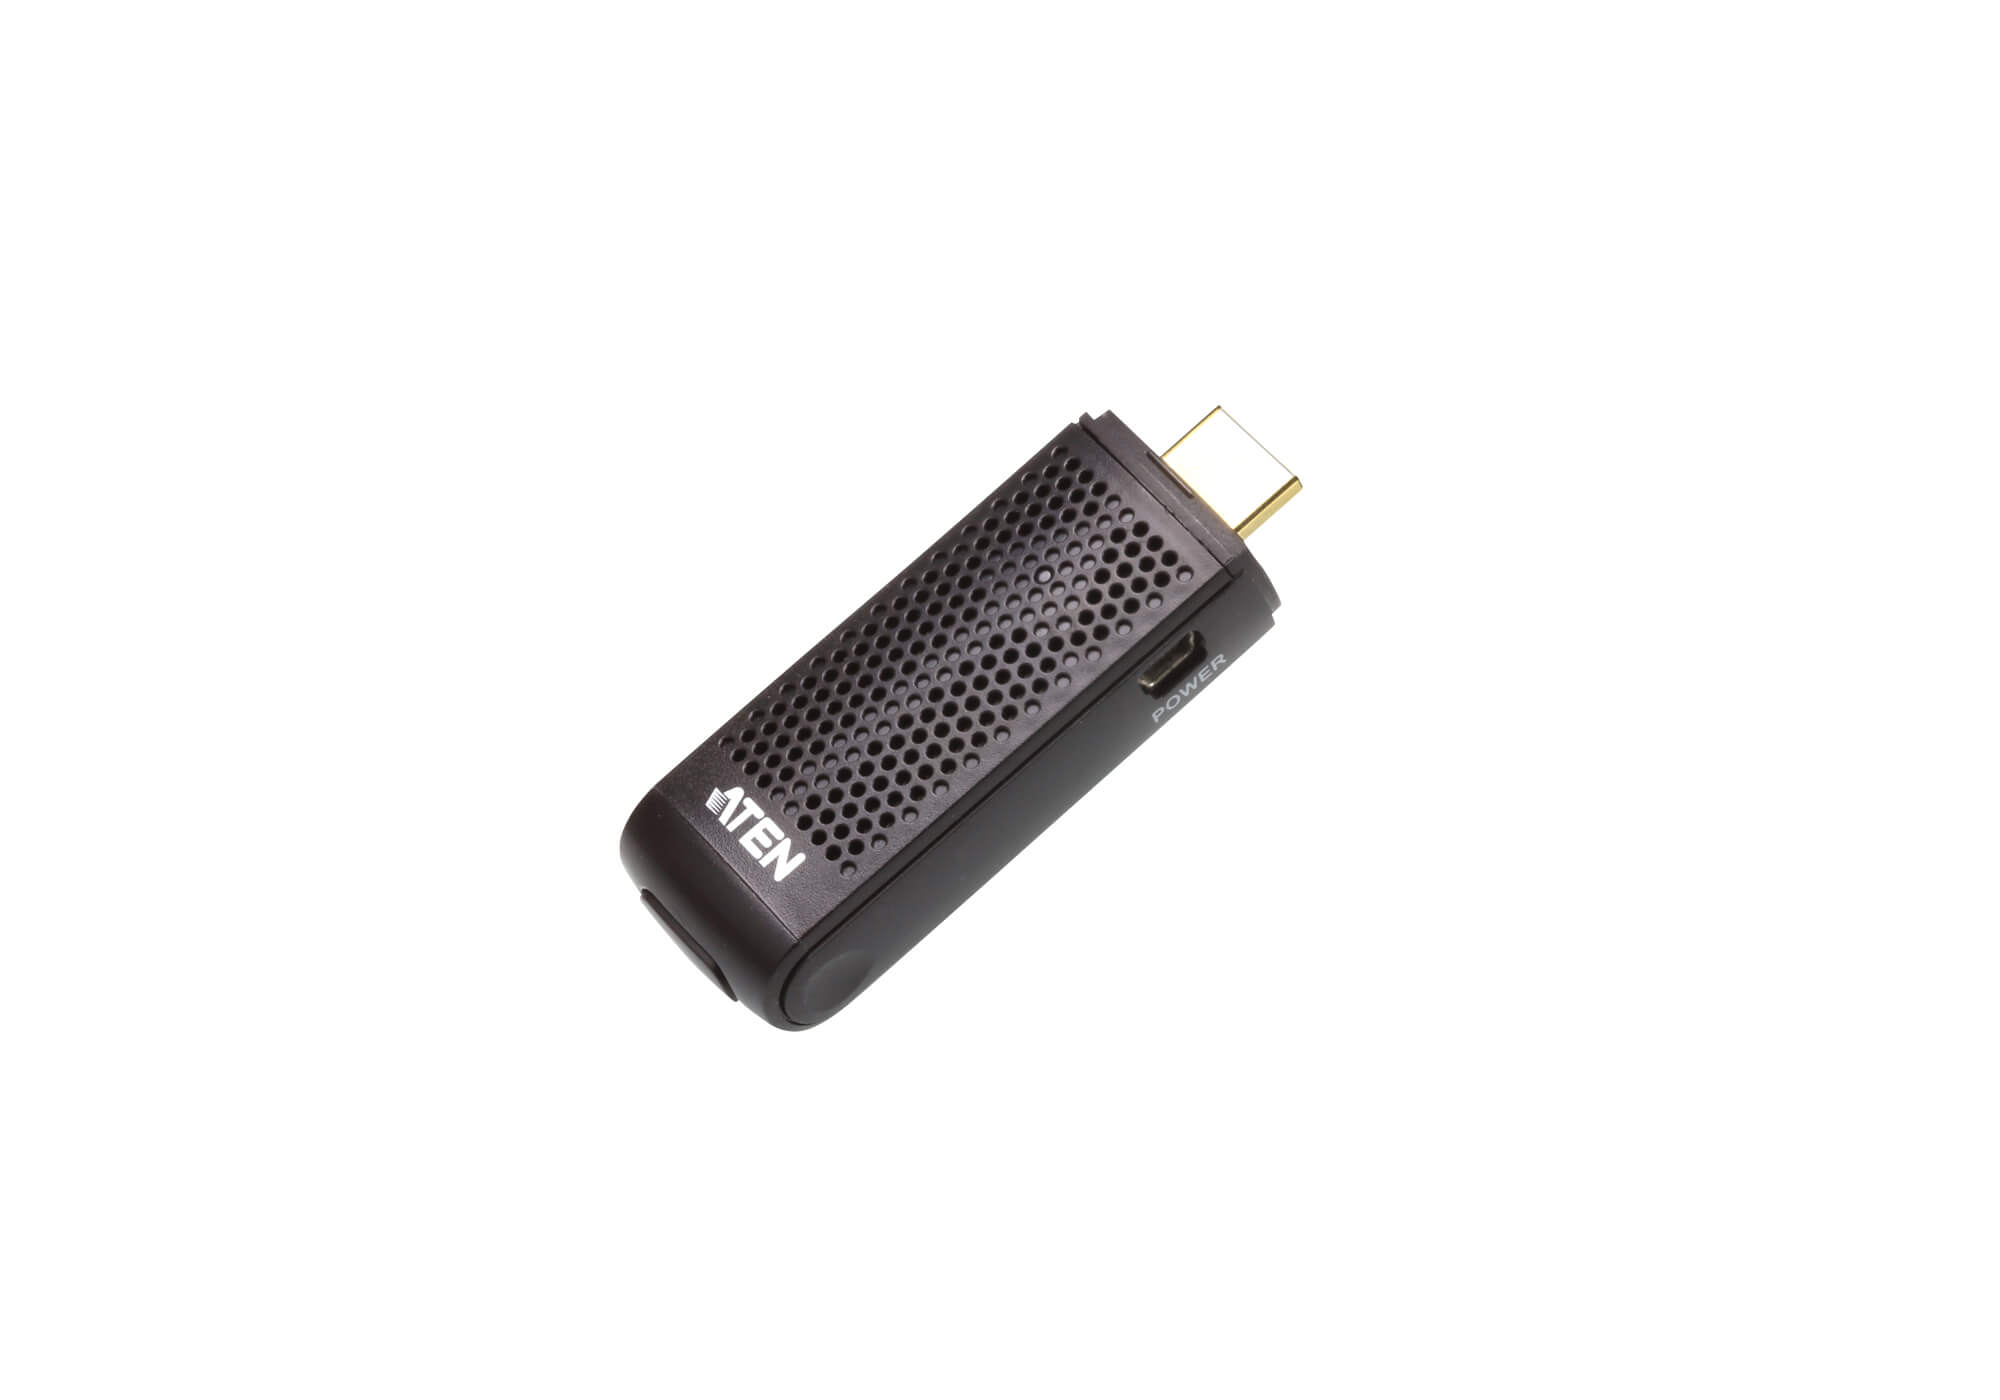 HDMI Dongle Wireless Transmitter (1080p@10m)-1